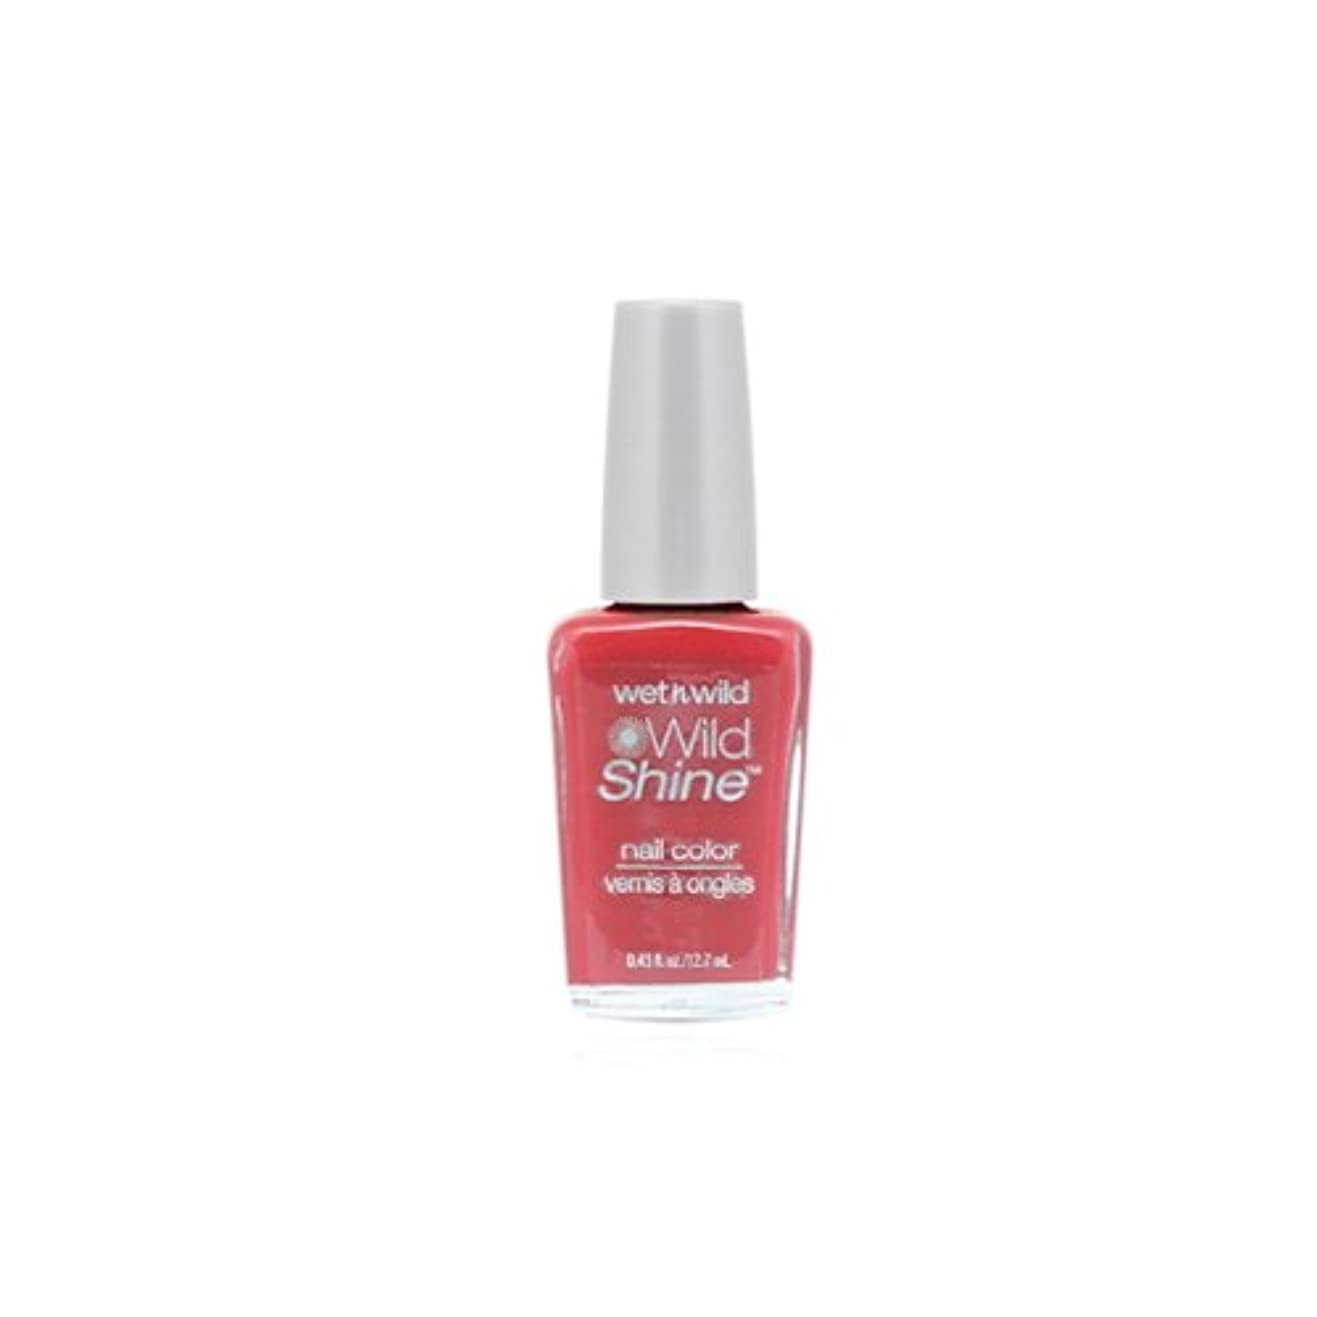 WET N WILD Wild Shine Nail Color - Casting Call (DC) (並行輸入品)